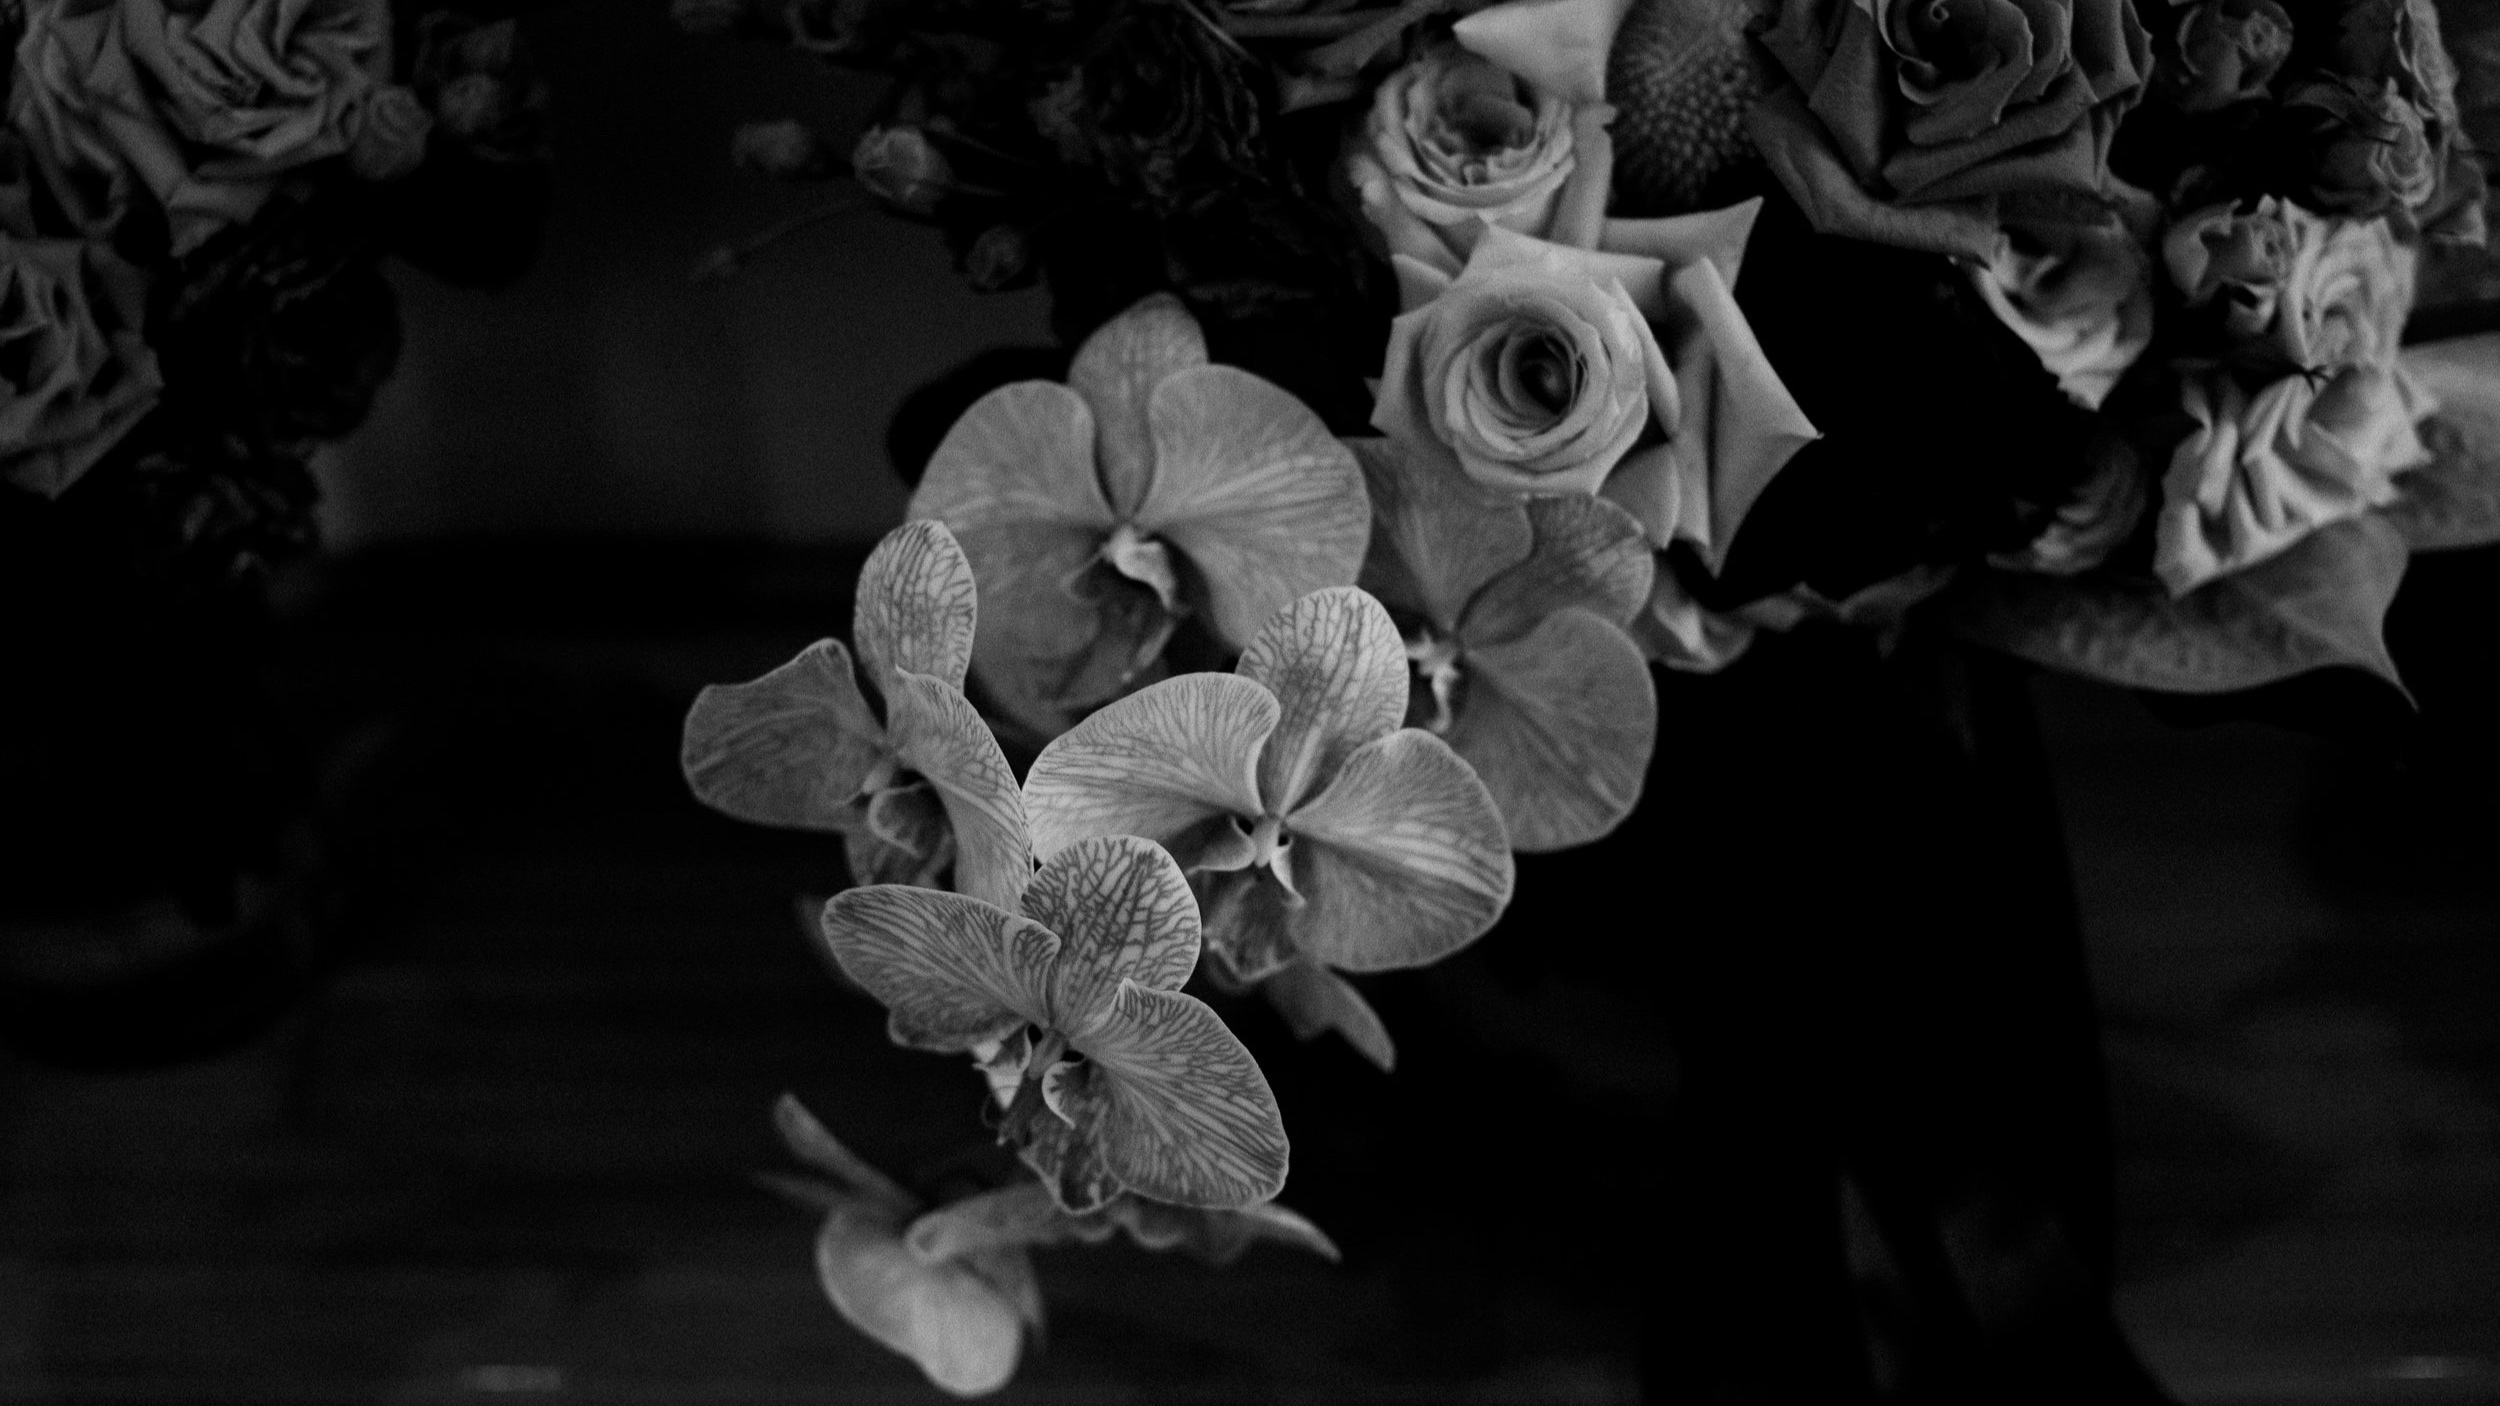 Bianca_Kate_Photography_Court_Flowers-001.jpg